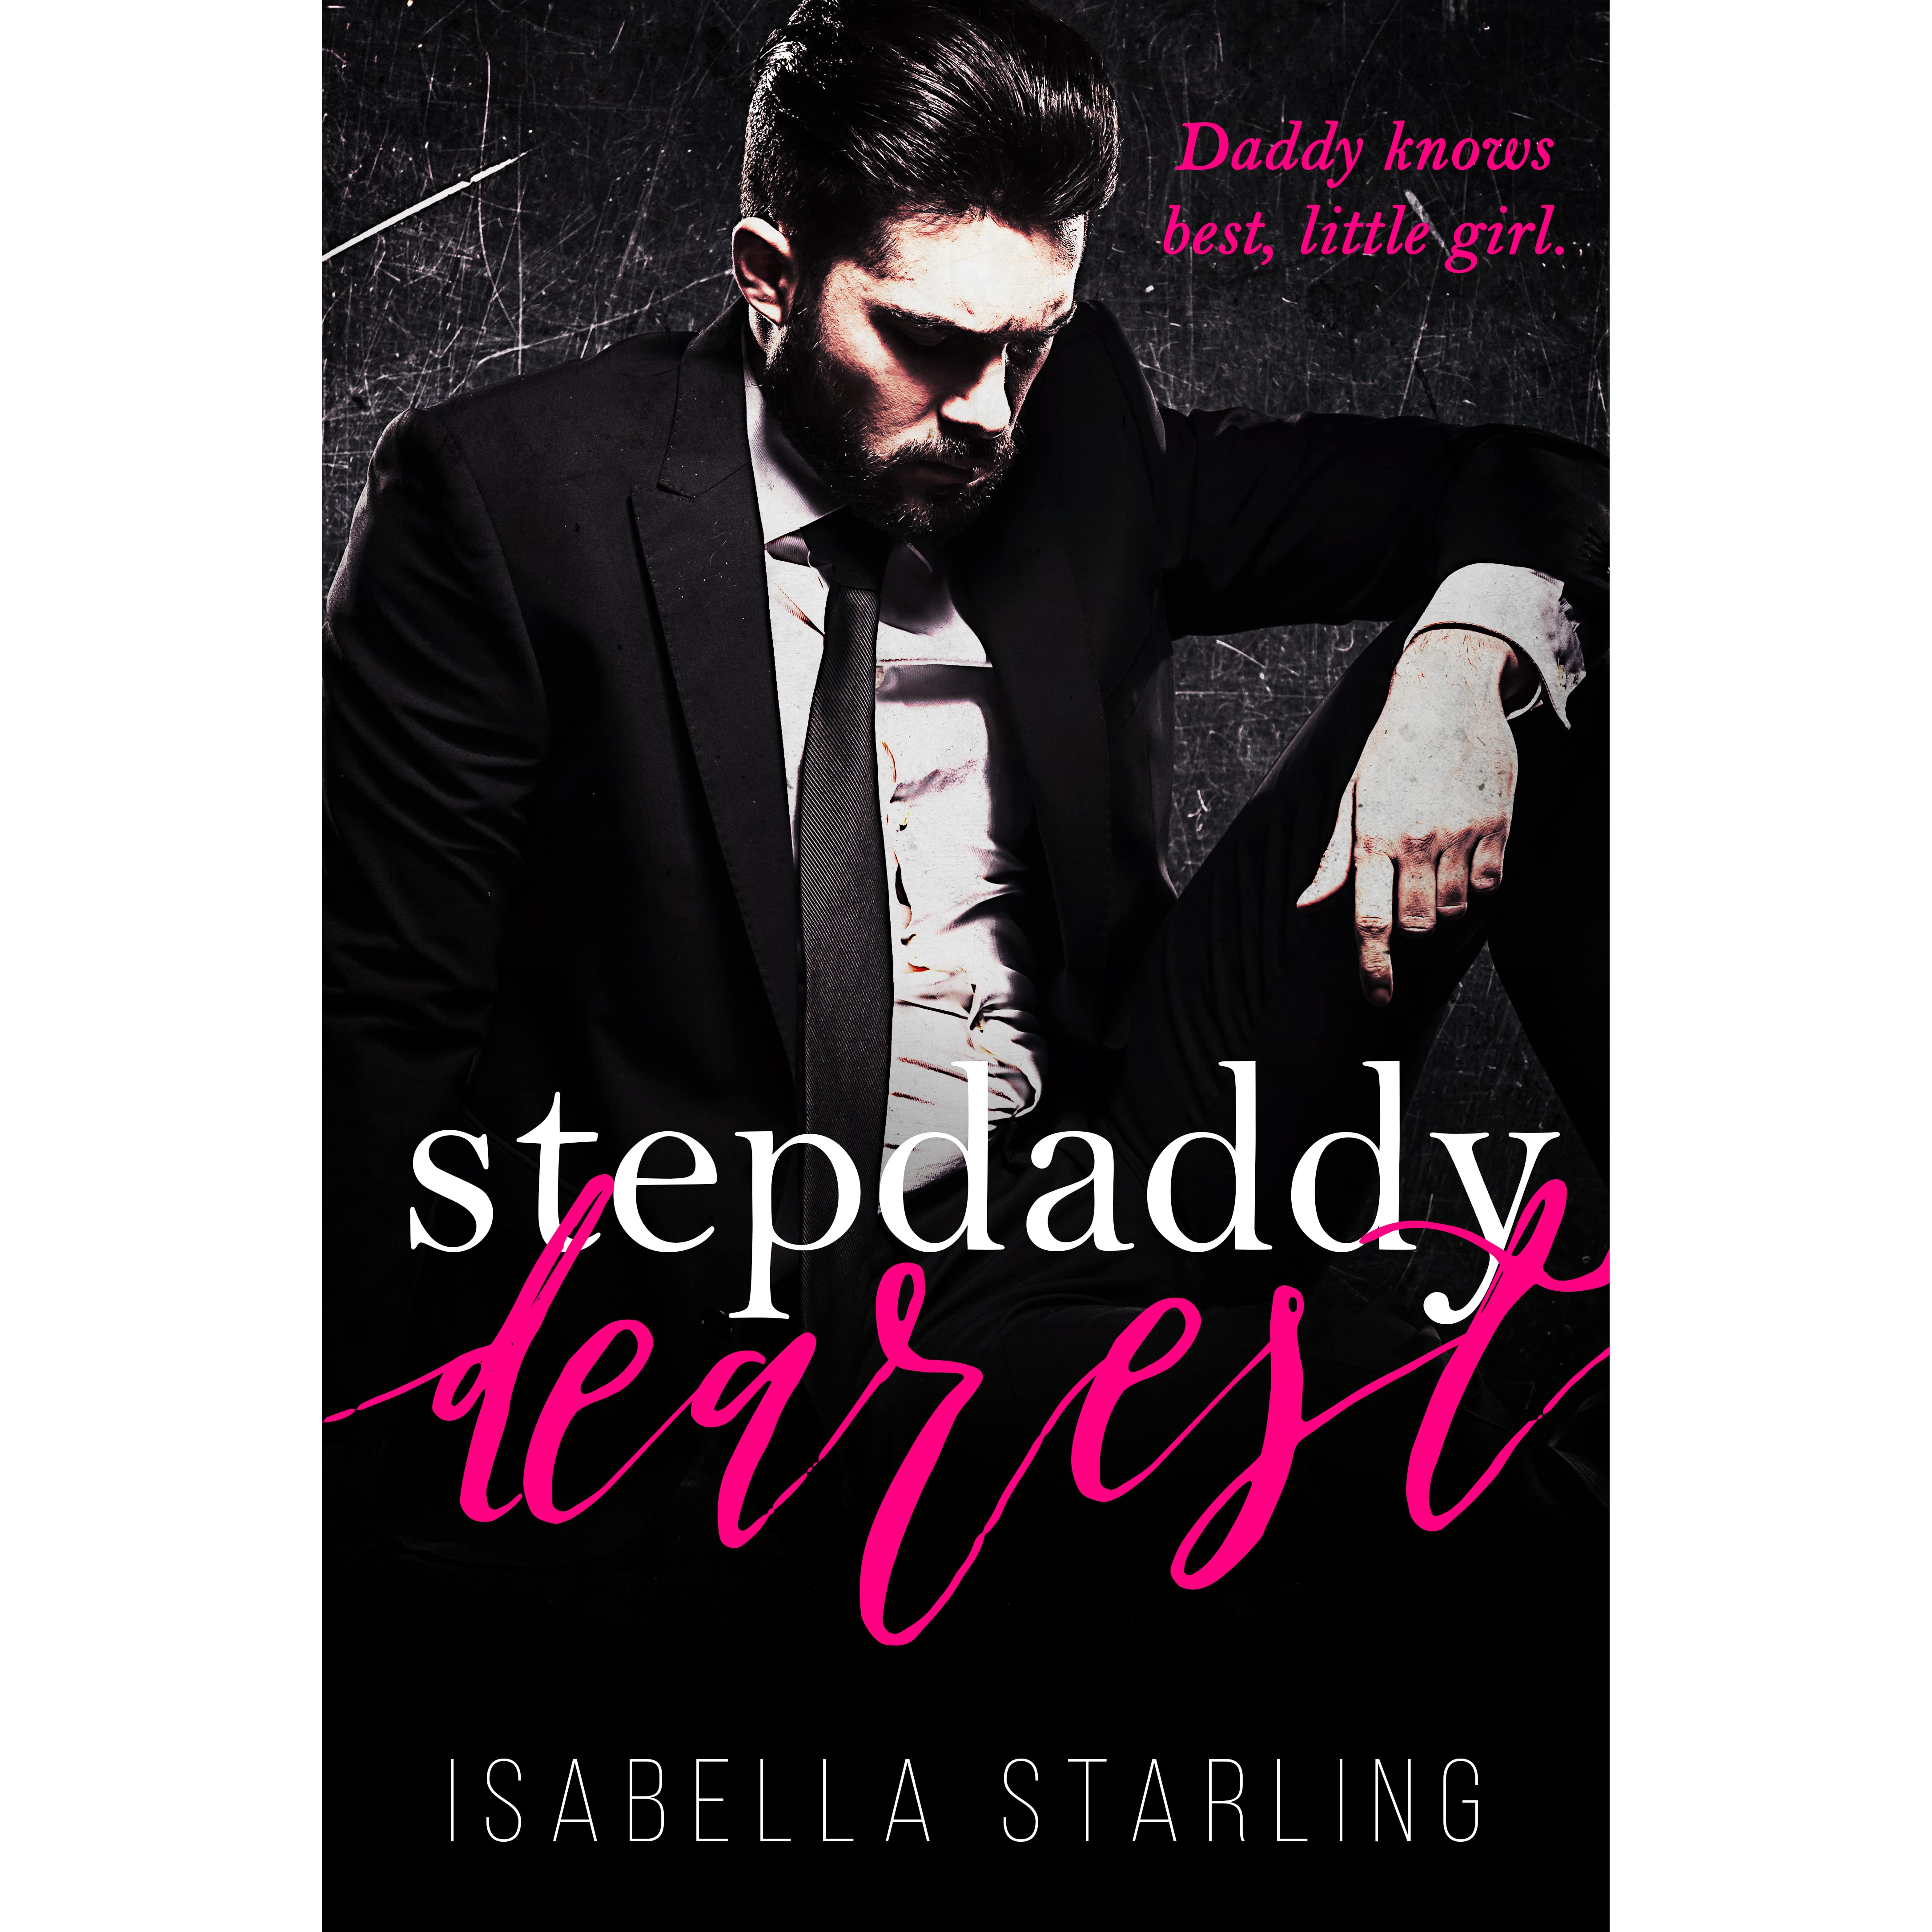 76540a62fd4d Stepdaddy Dearest by Isabella Starling (4 star ratings)